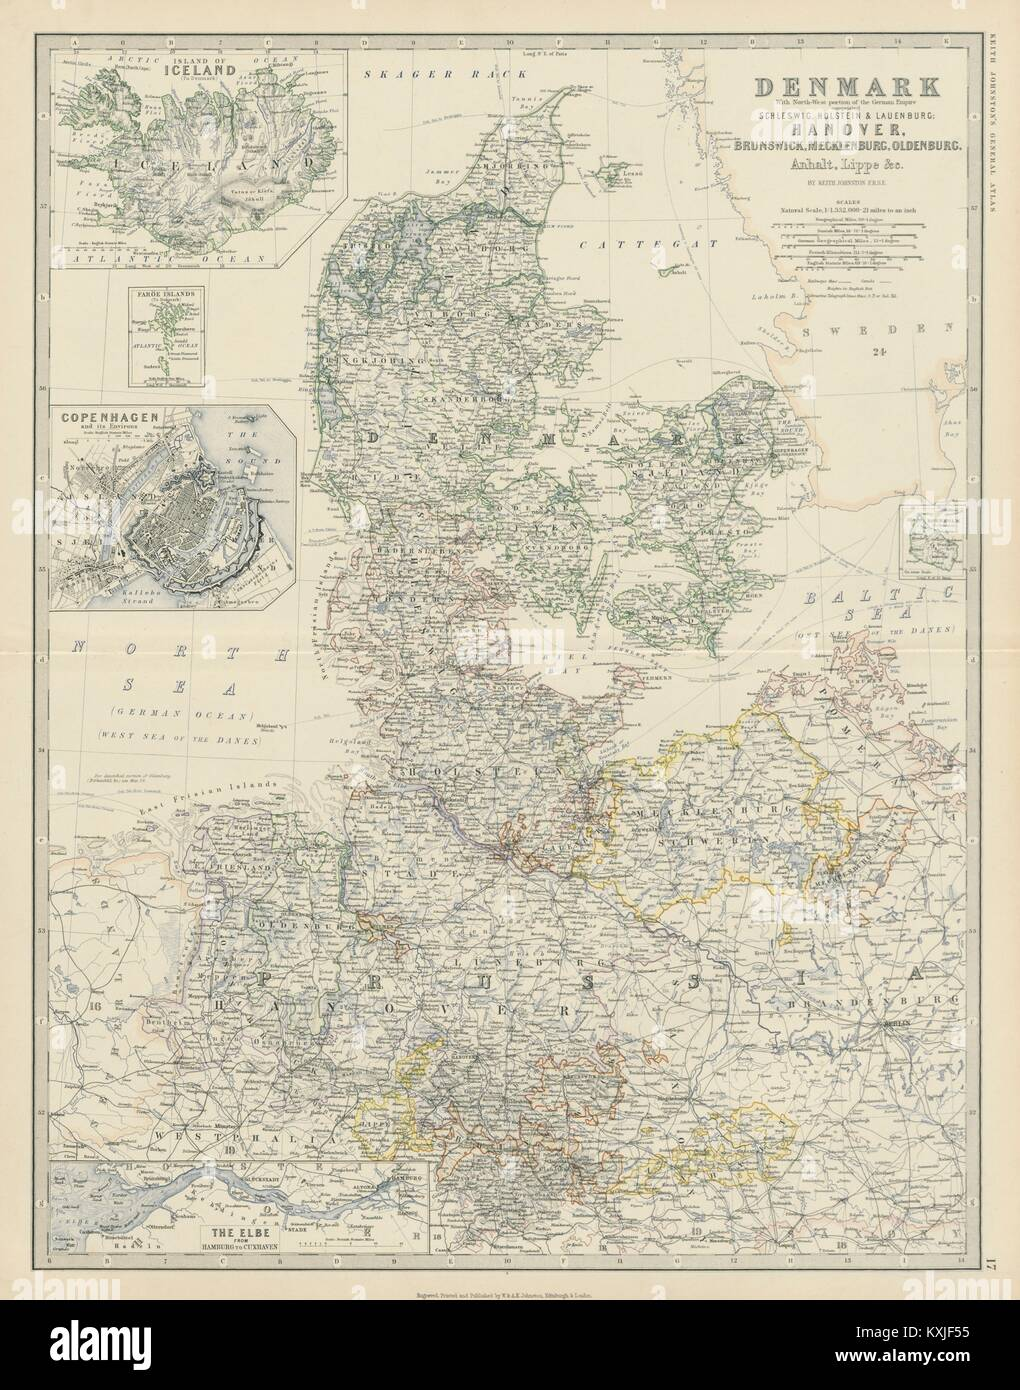 Map Of Northern Germany And Denmark.Denmark Northern Germany Iceland Copenhagen The Elbe 50x60cm Stock